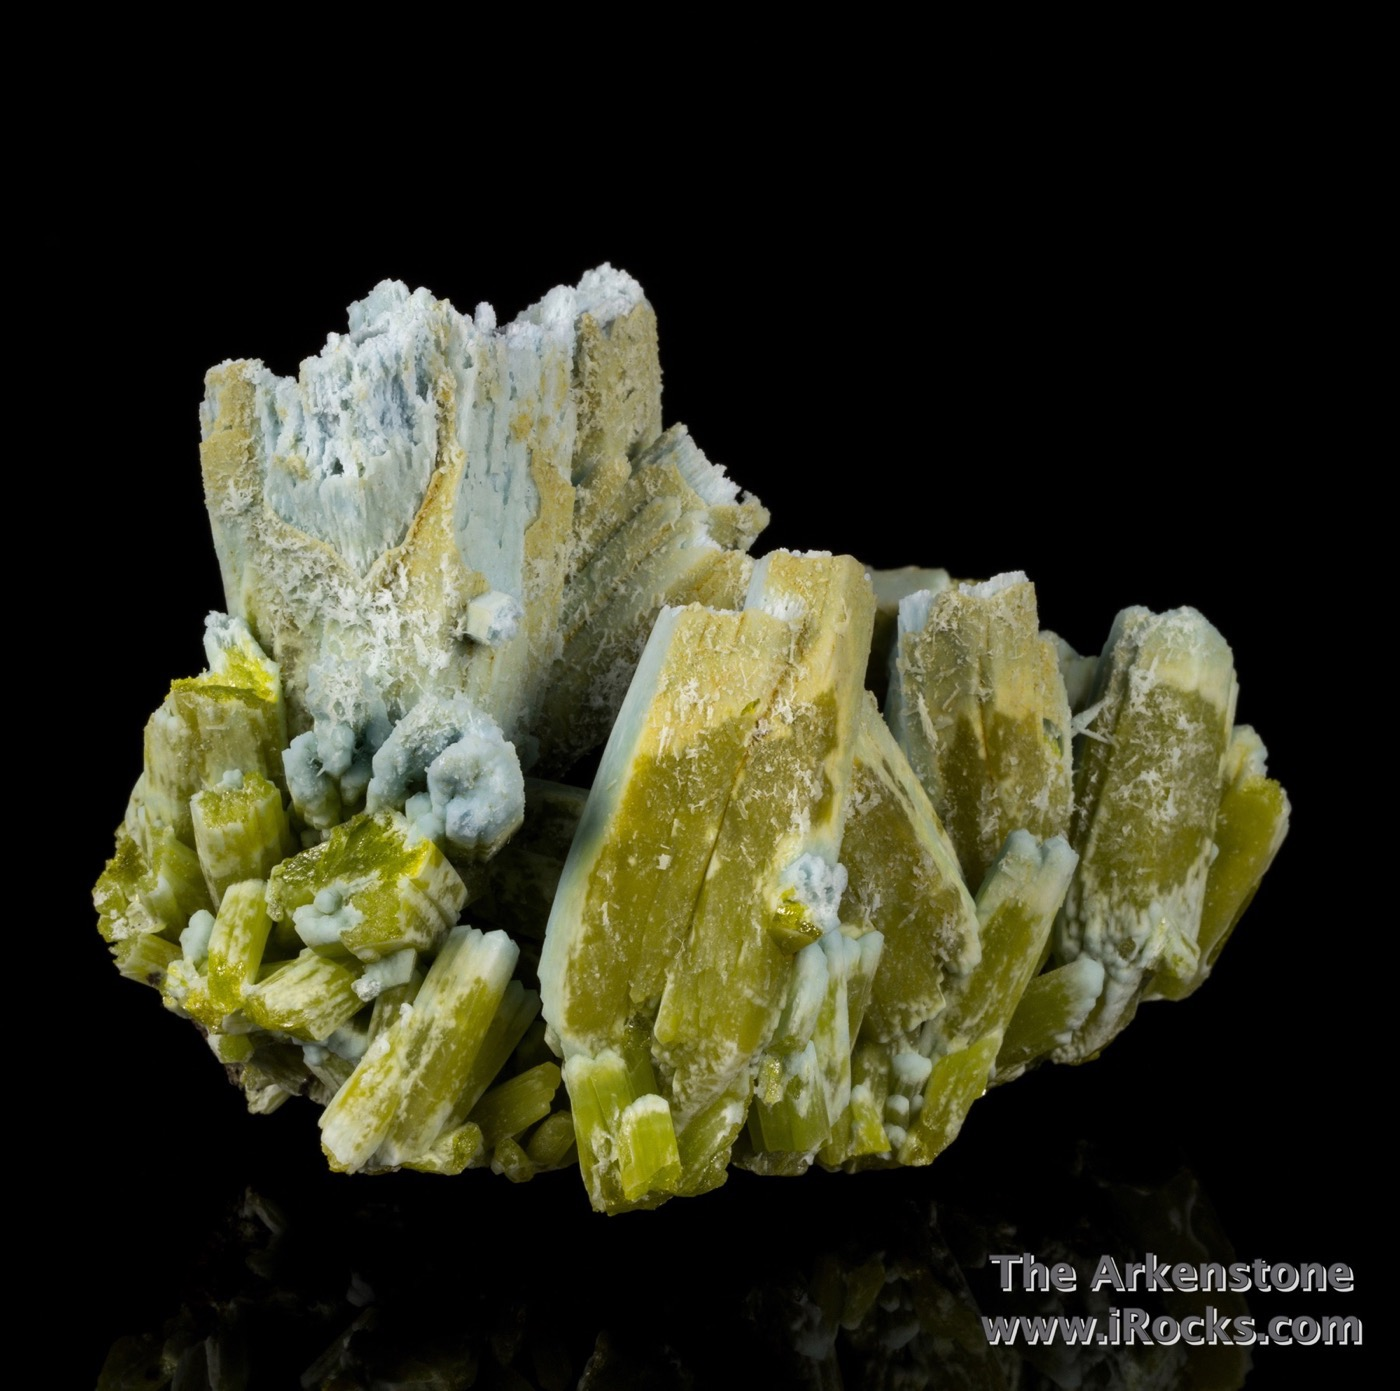 This specimen largest robust crystals 5 5 cm size The pyromorphite